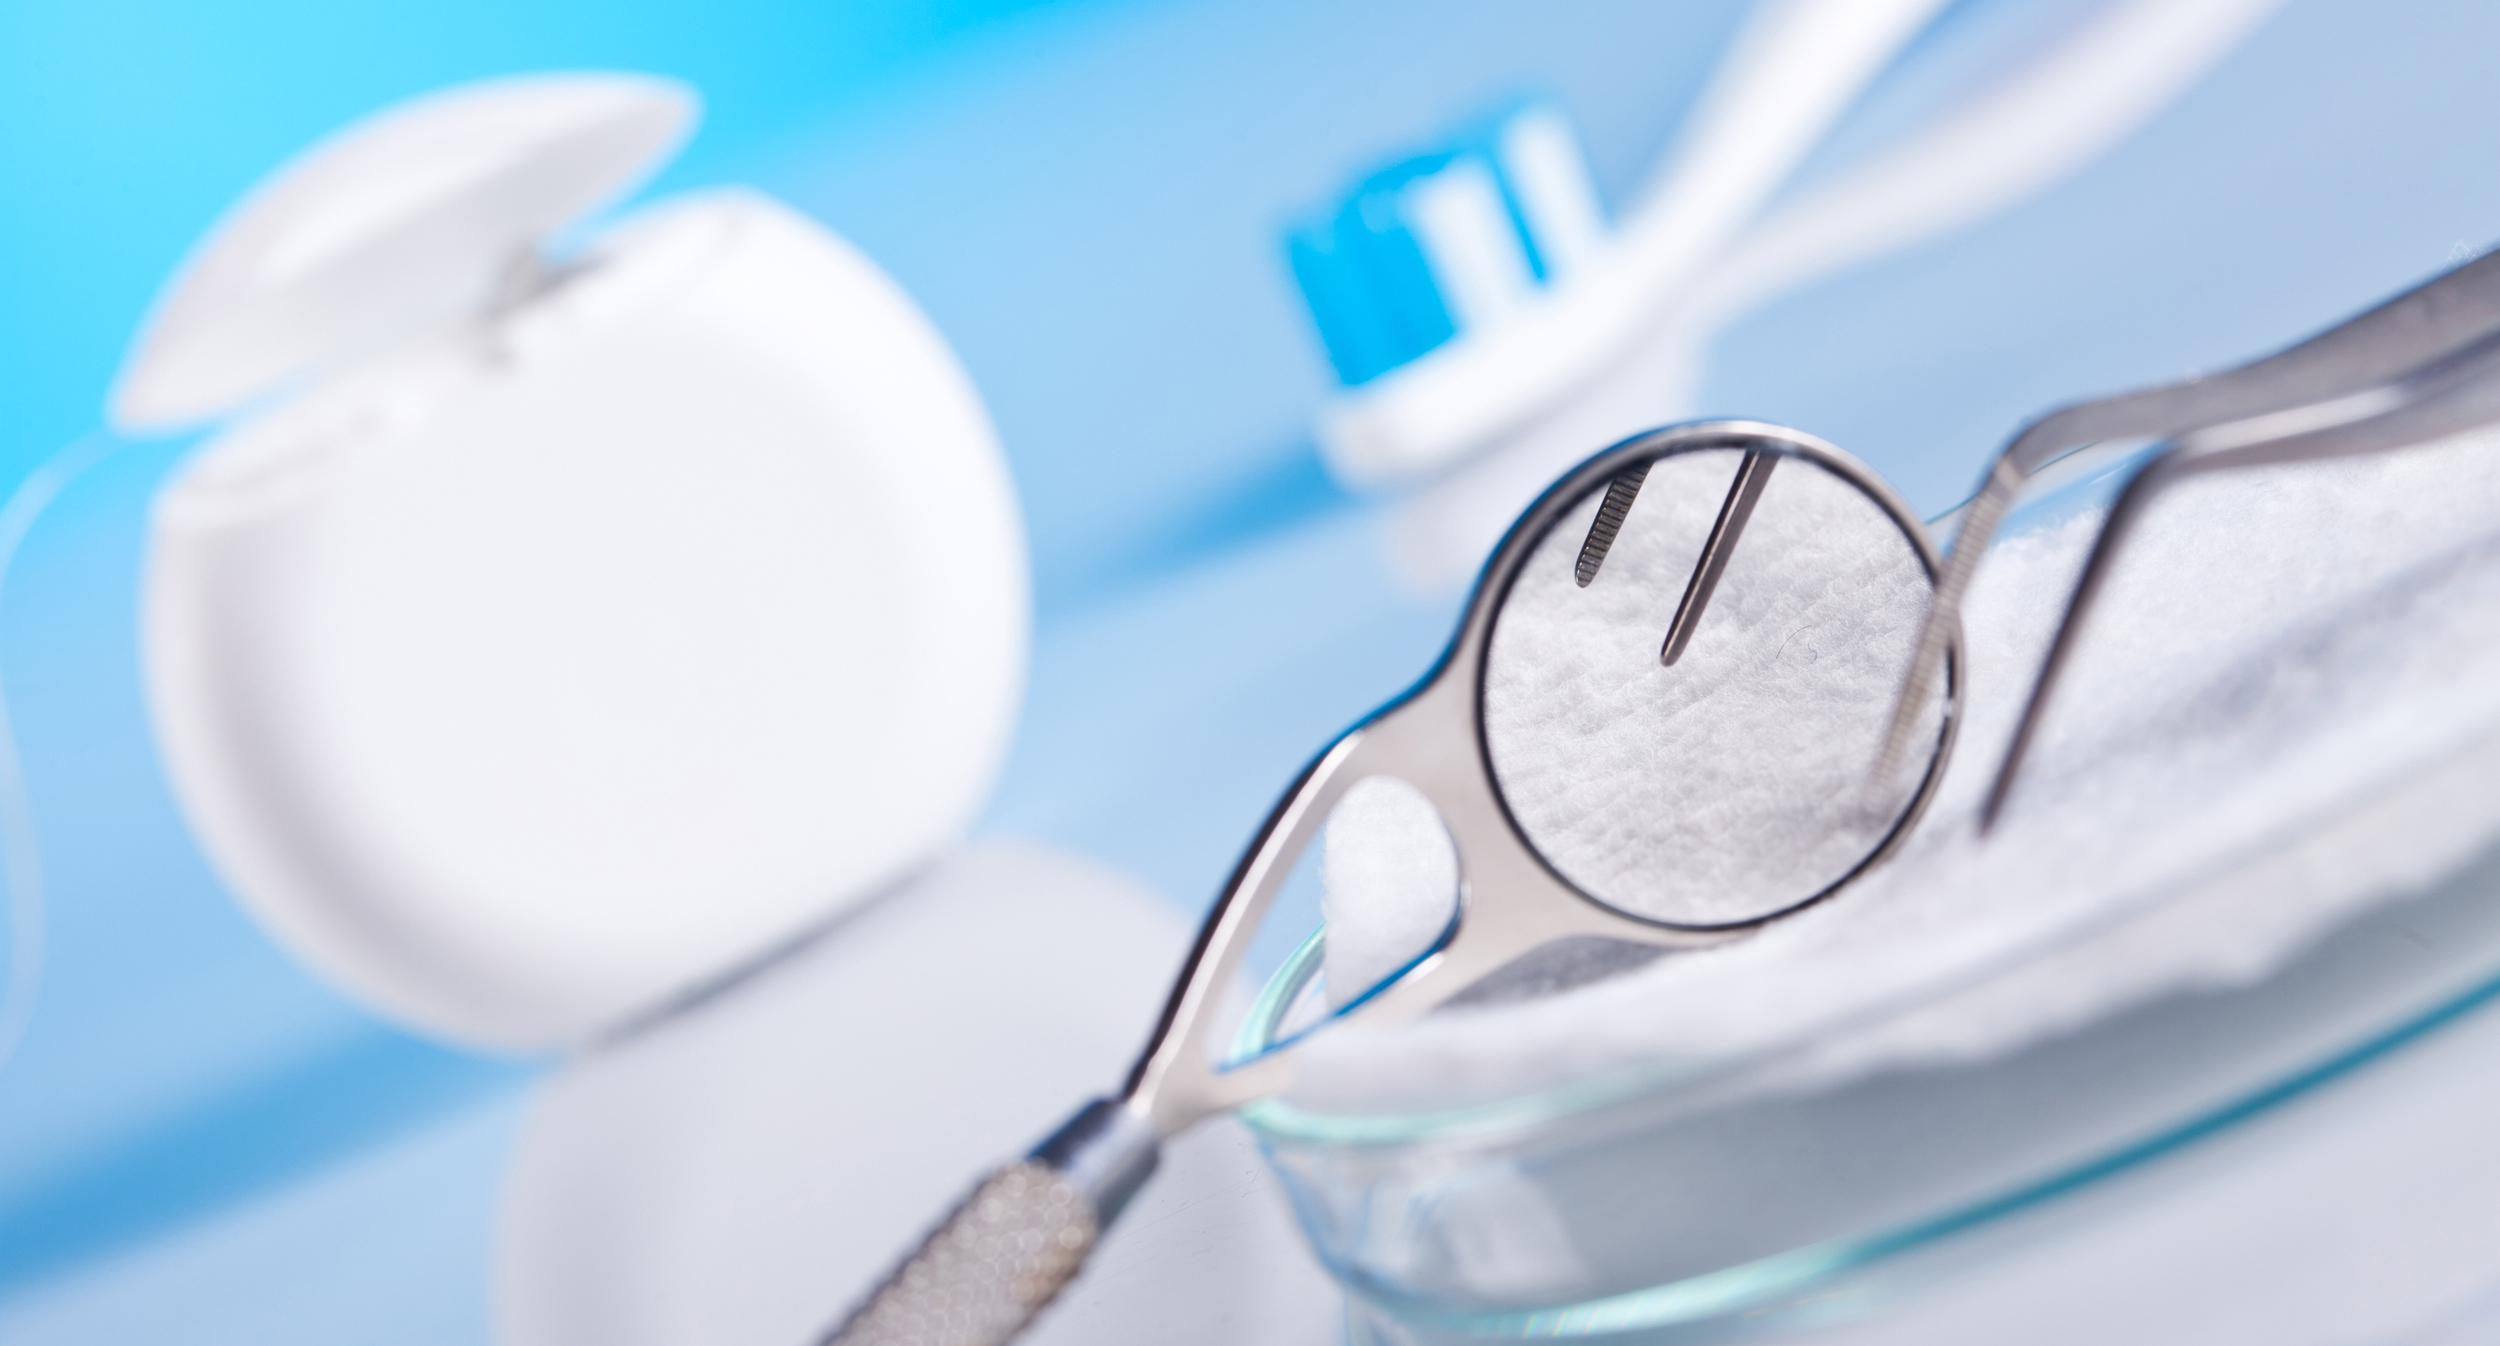 Dental cleanings and exams are important